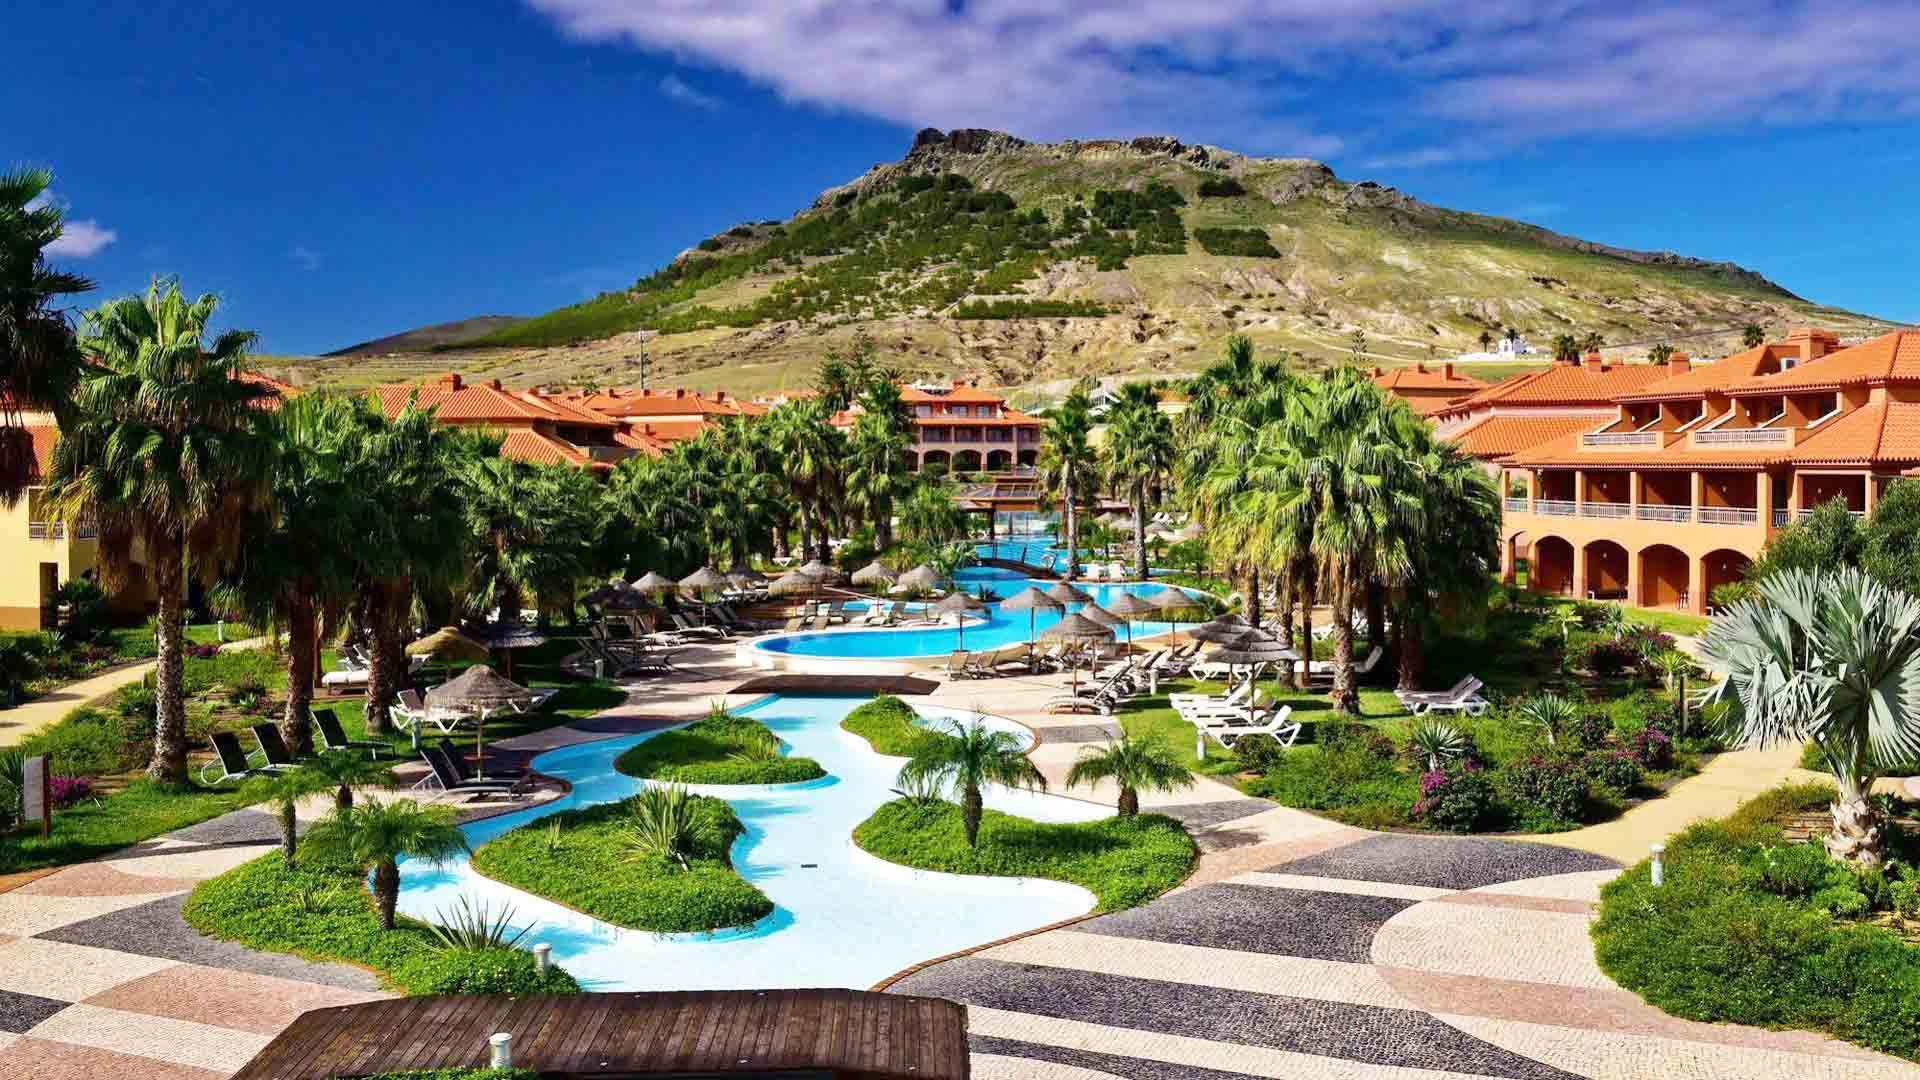 Pestana Porto Santo madeira - Photo 2